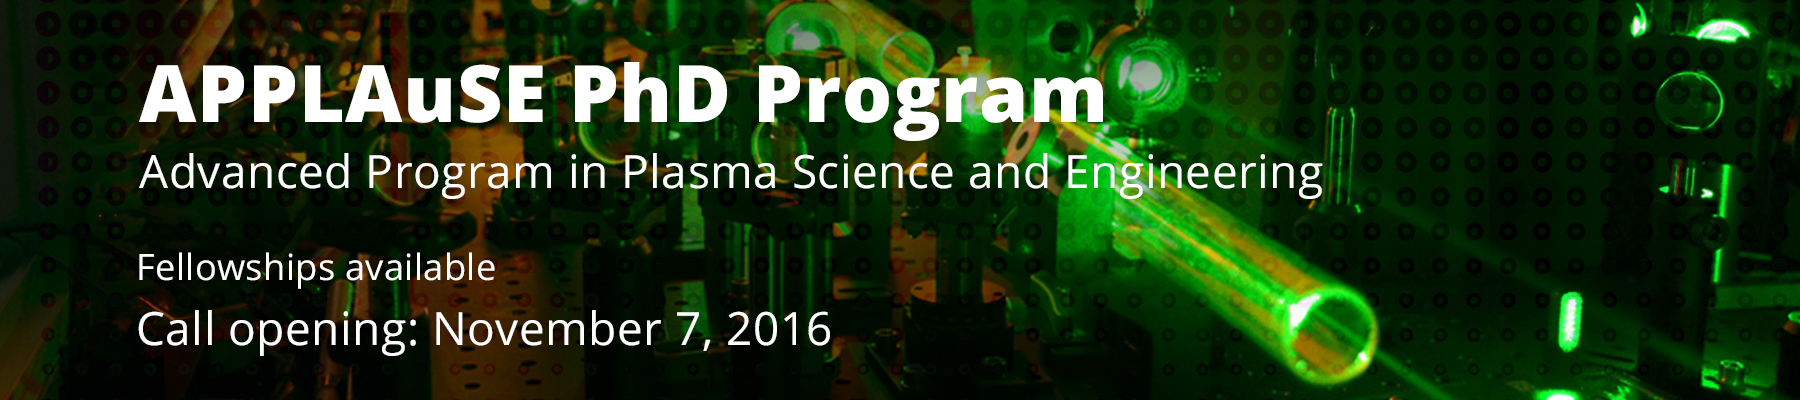 PhD Advanced Program in Plasma Science and Engineering - Call for applications in November 2016